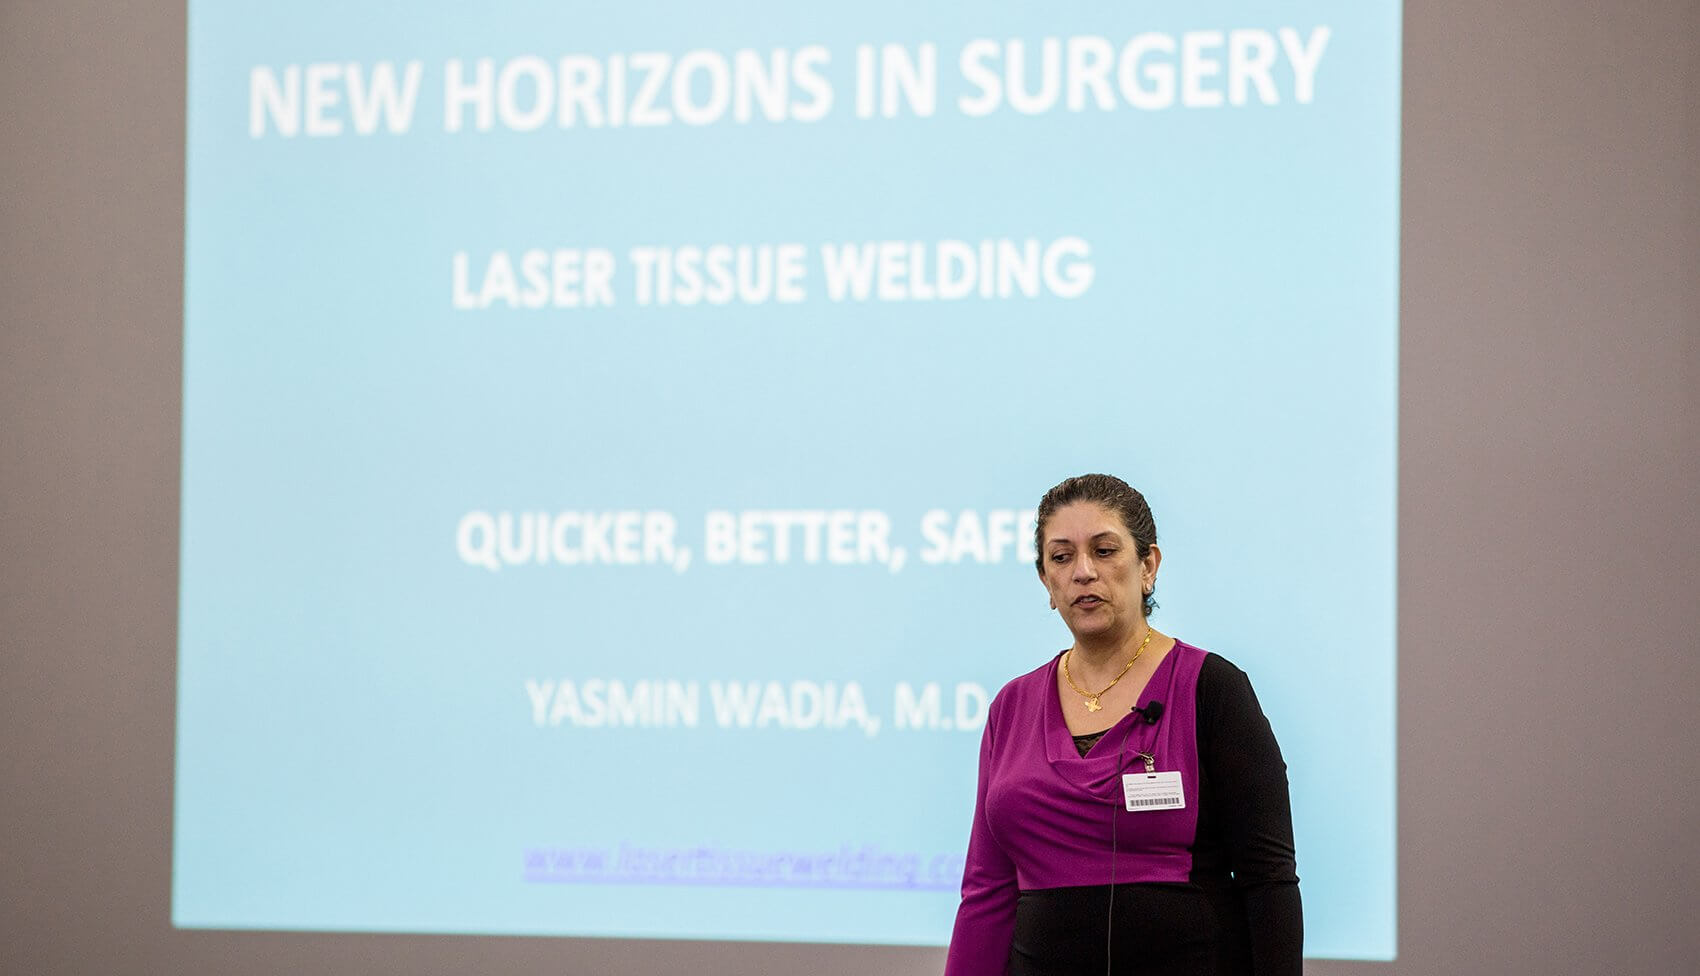 Yasmin Wadia, M.D., chief executive officer of Laser Tissue Welding.